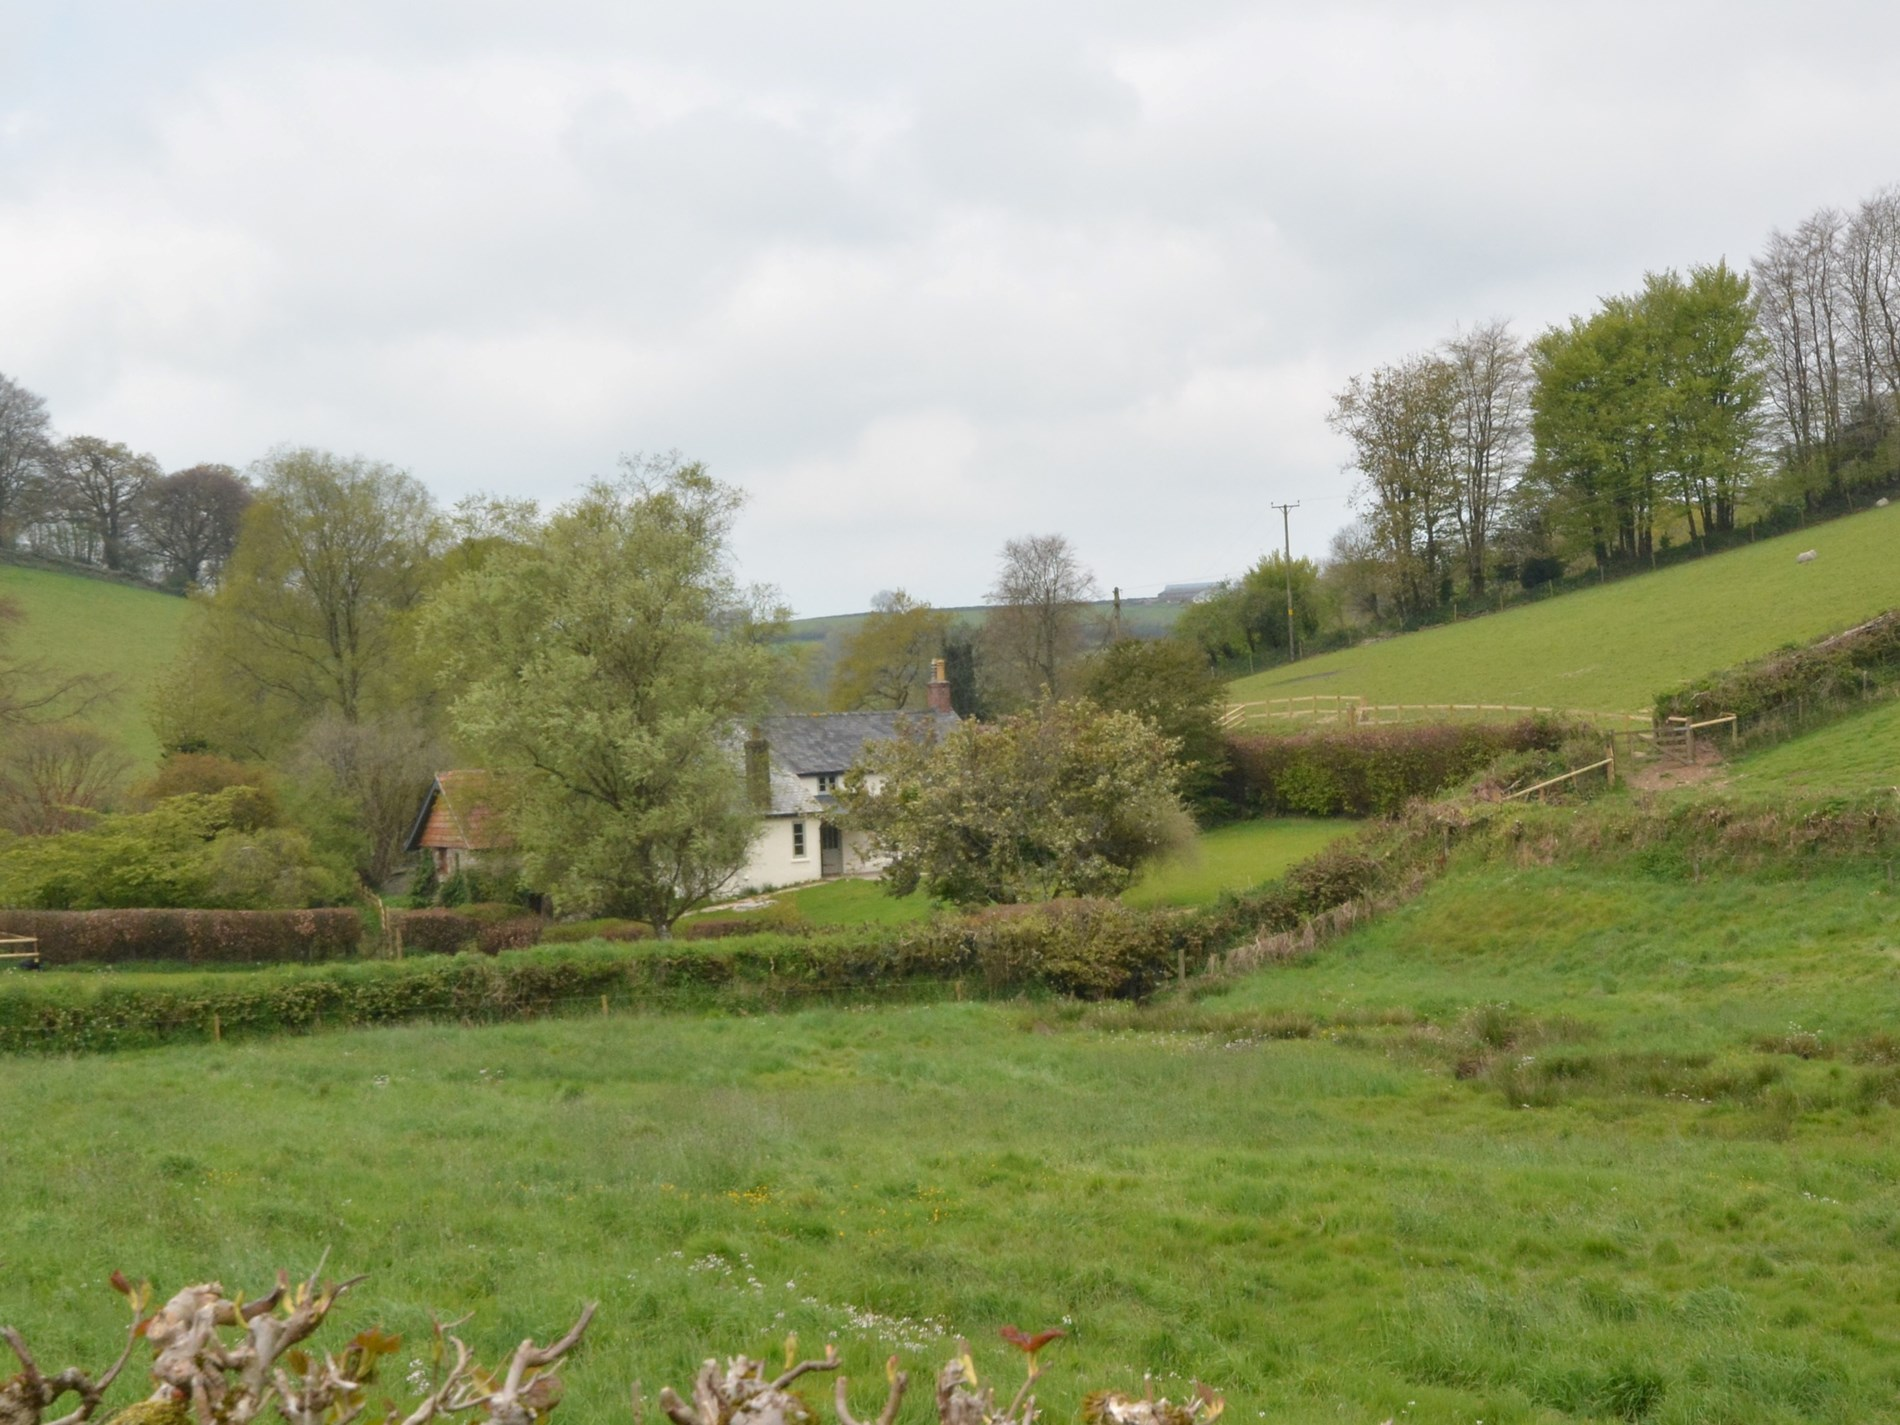 View towards the property surrounded by countryside